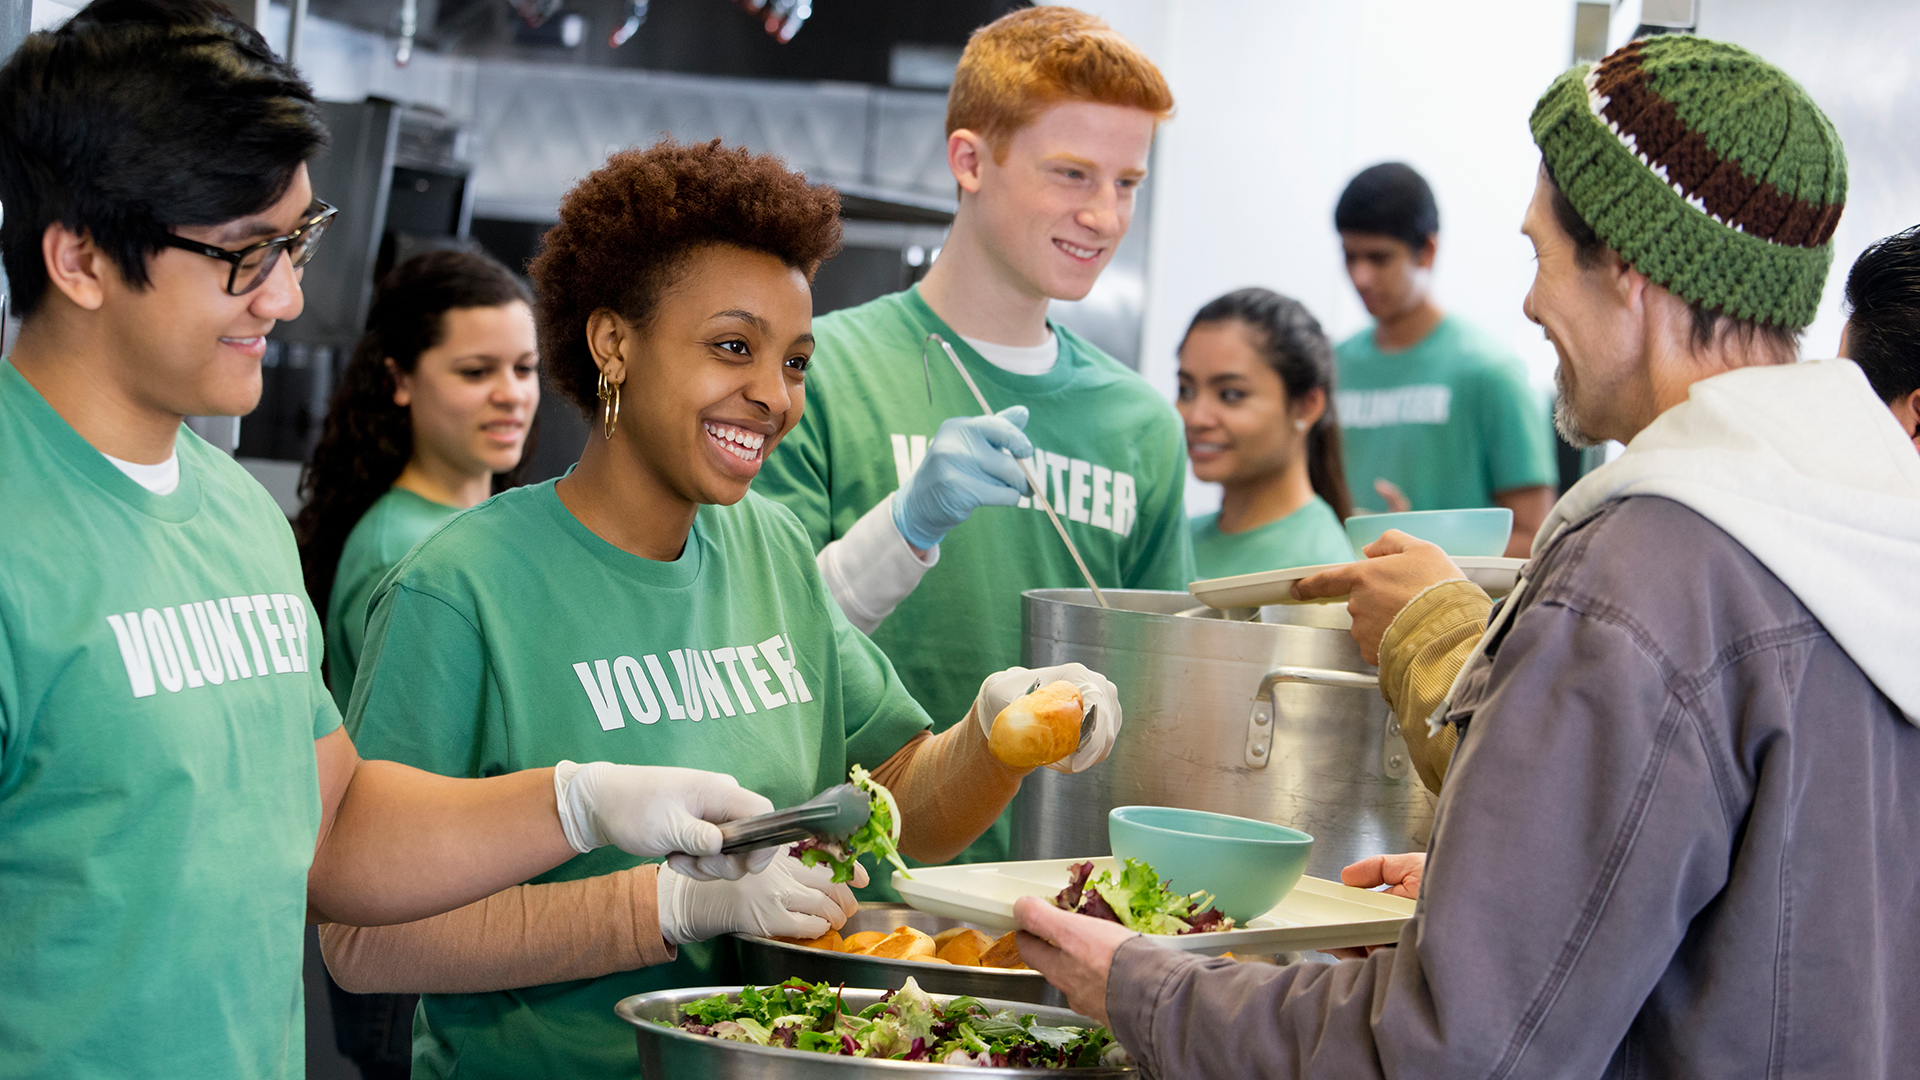 Volunteering: Types of volunteer work and why they affect